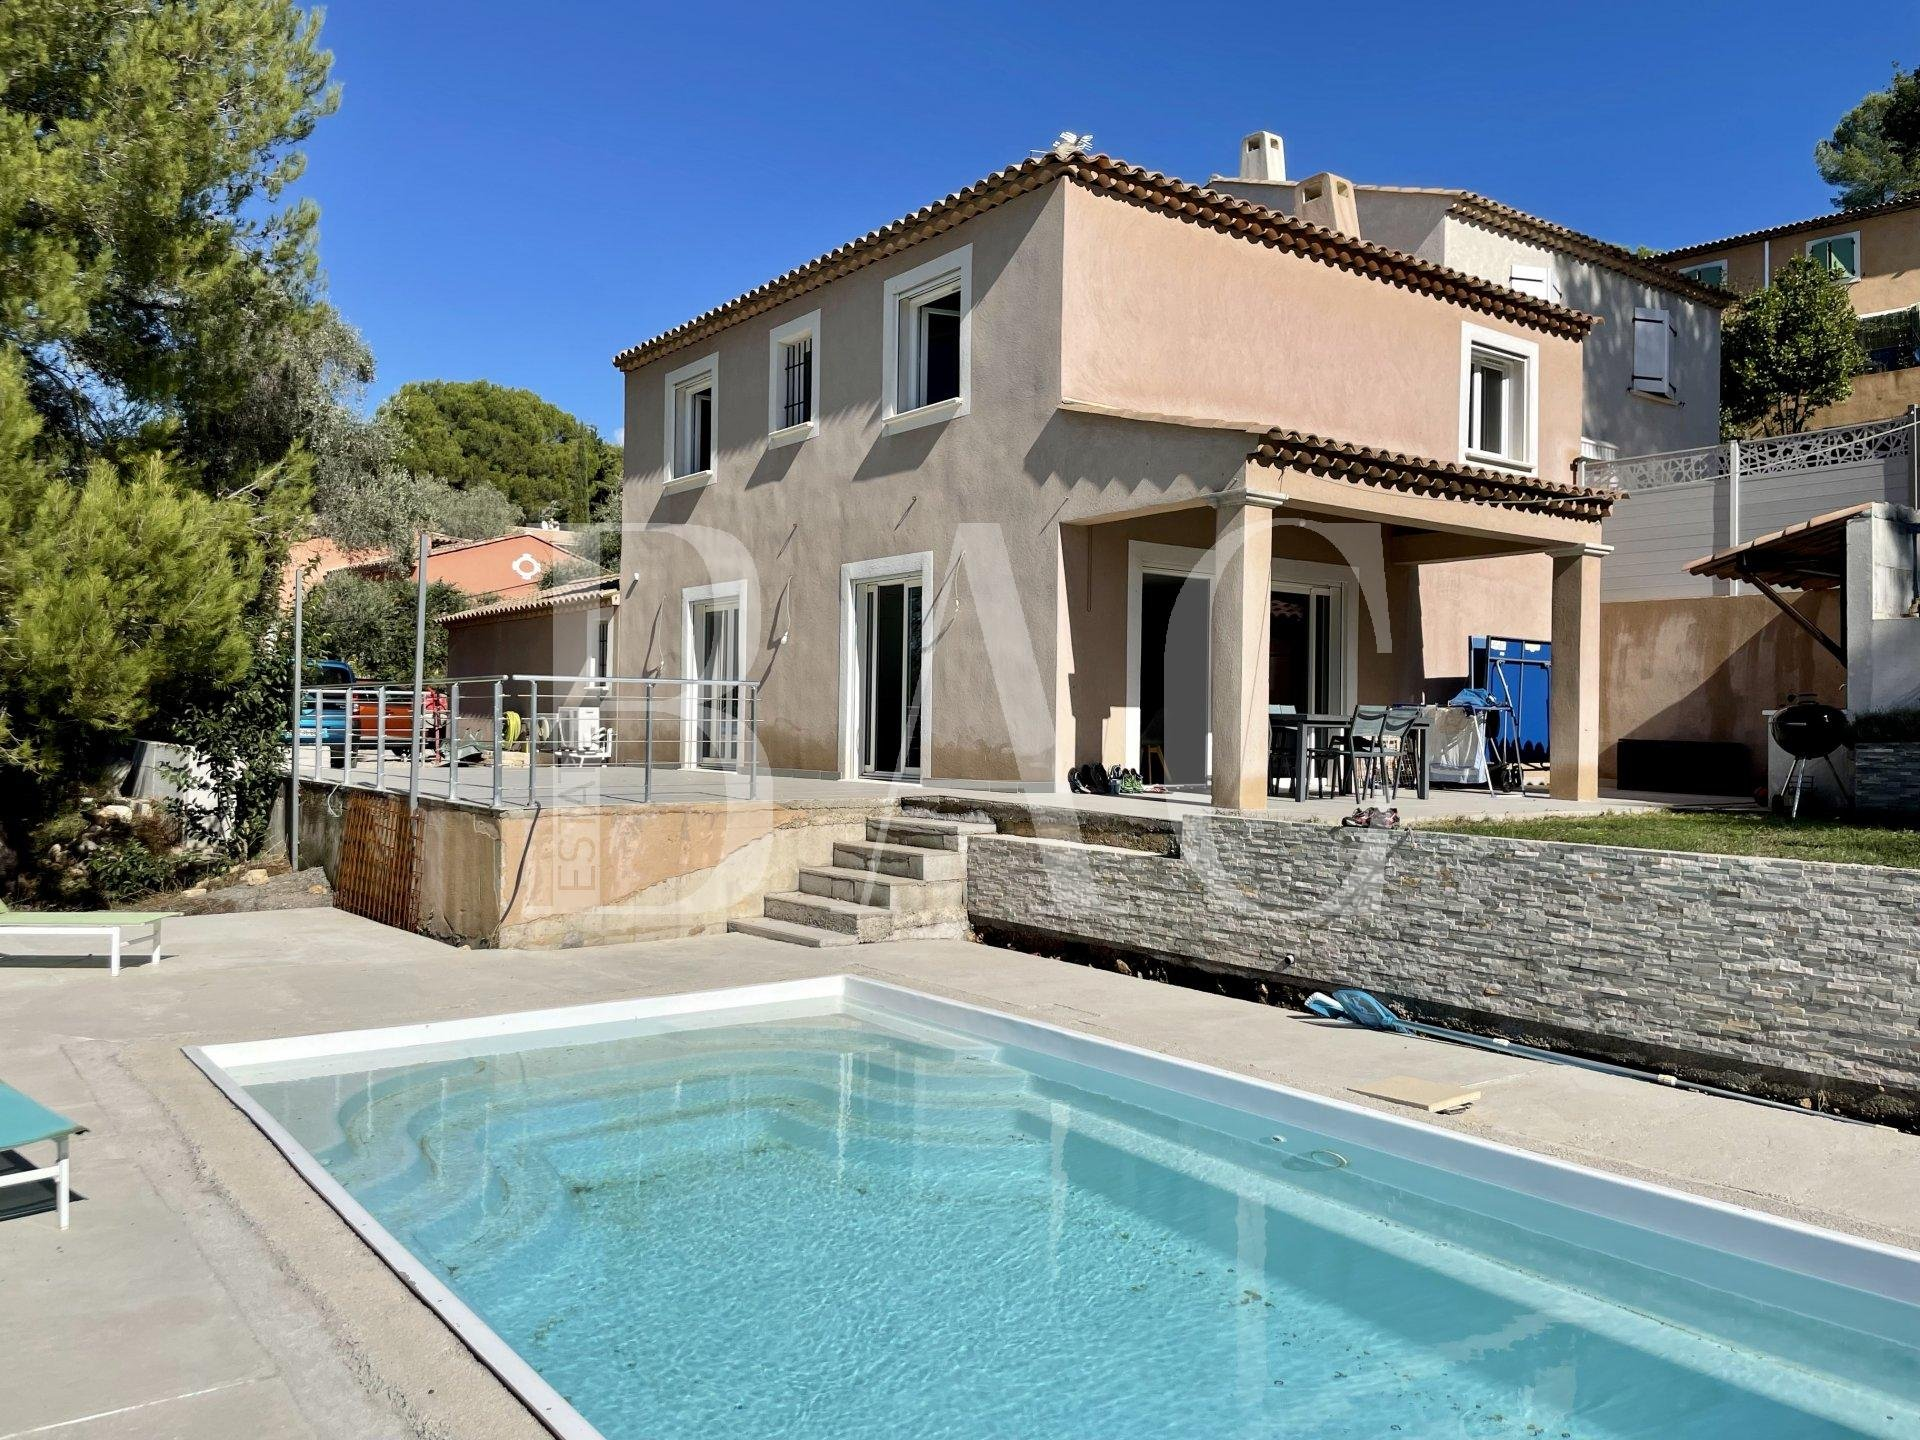 Villa 10 minutes from the beaches and 600 meters from the shops